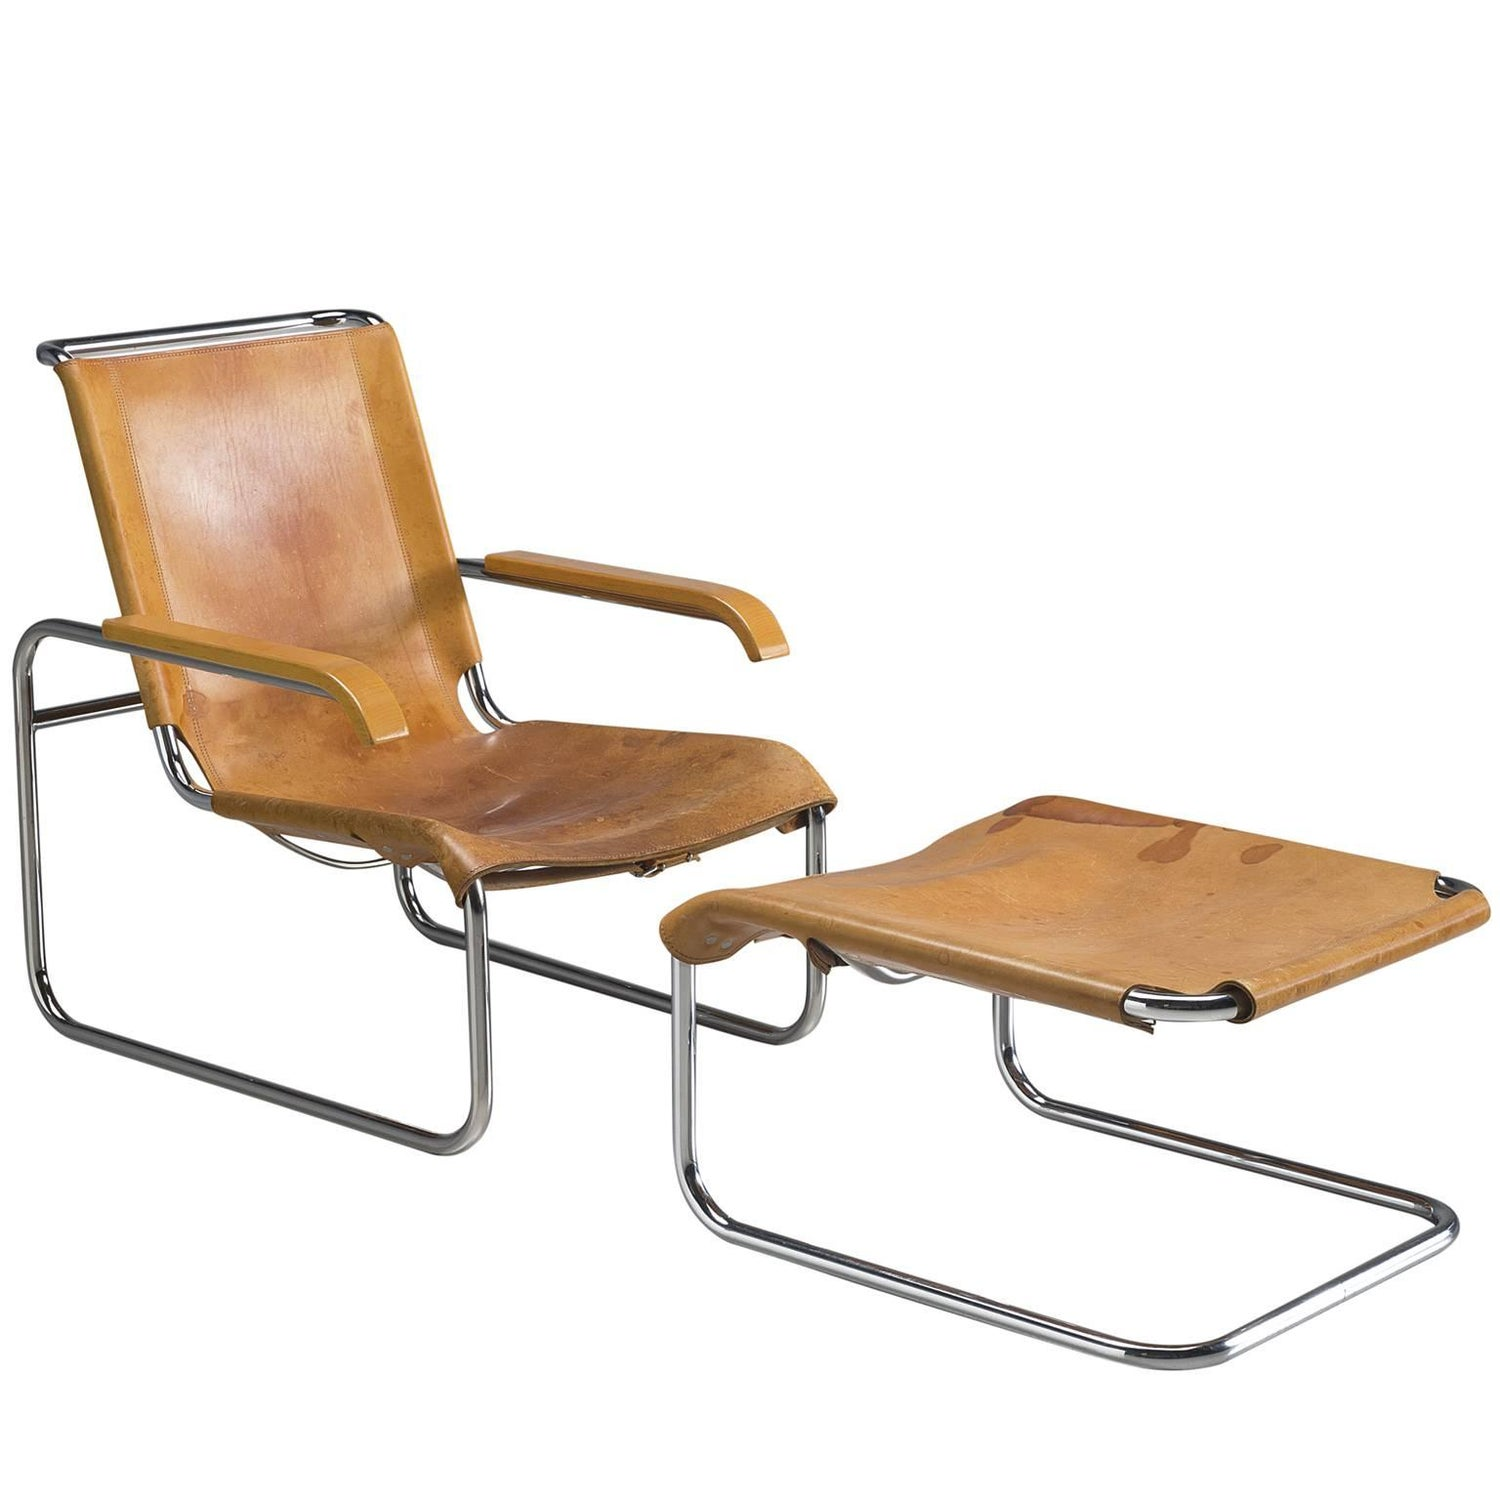 Bauhaus tubular steel lounge chair at 1stdibs - Marcel Breuer Leather Lounge Chair With Ottoman By Thonet For Sale At 1stdibs